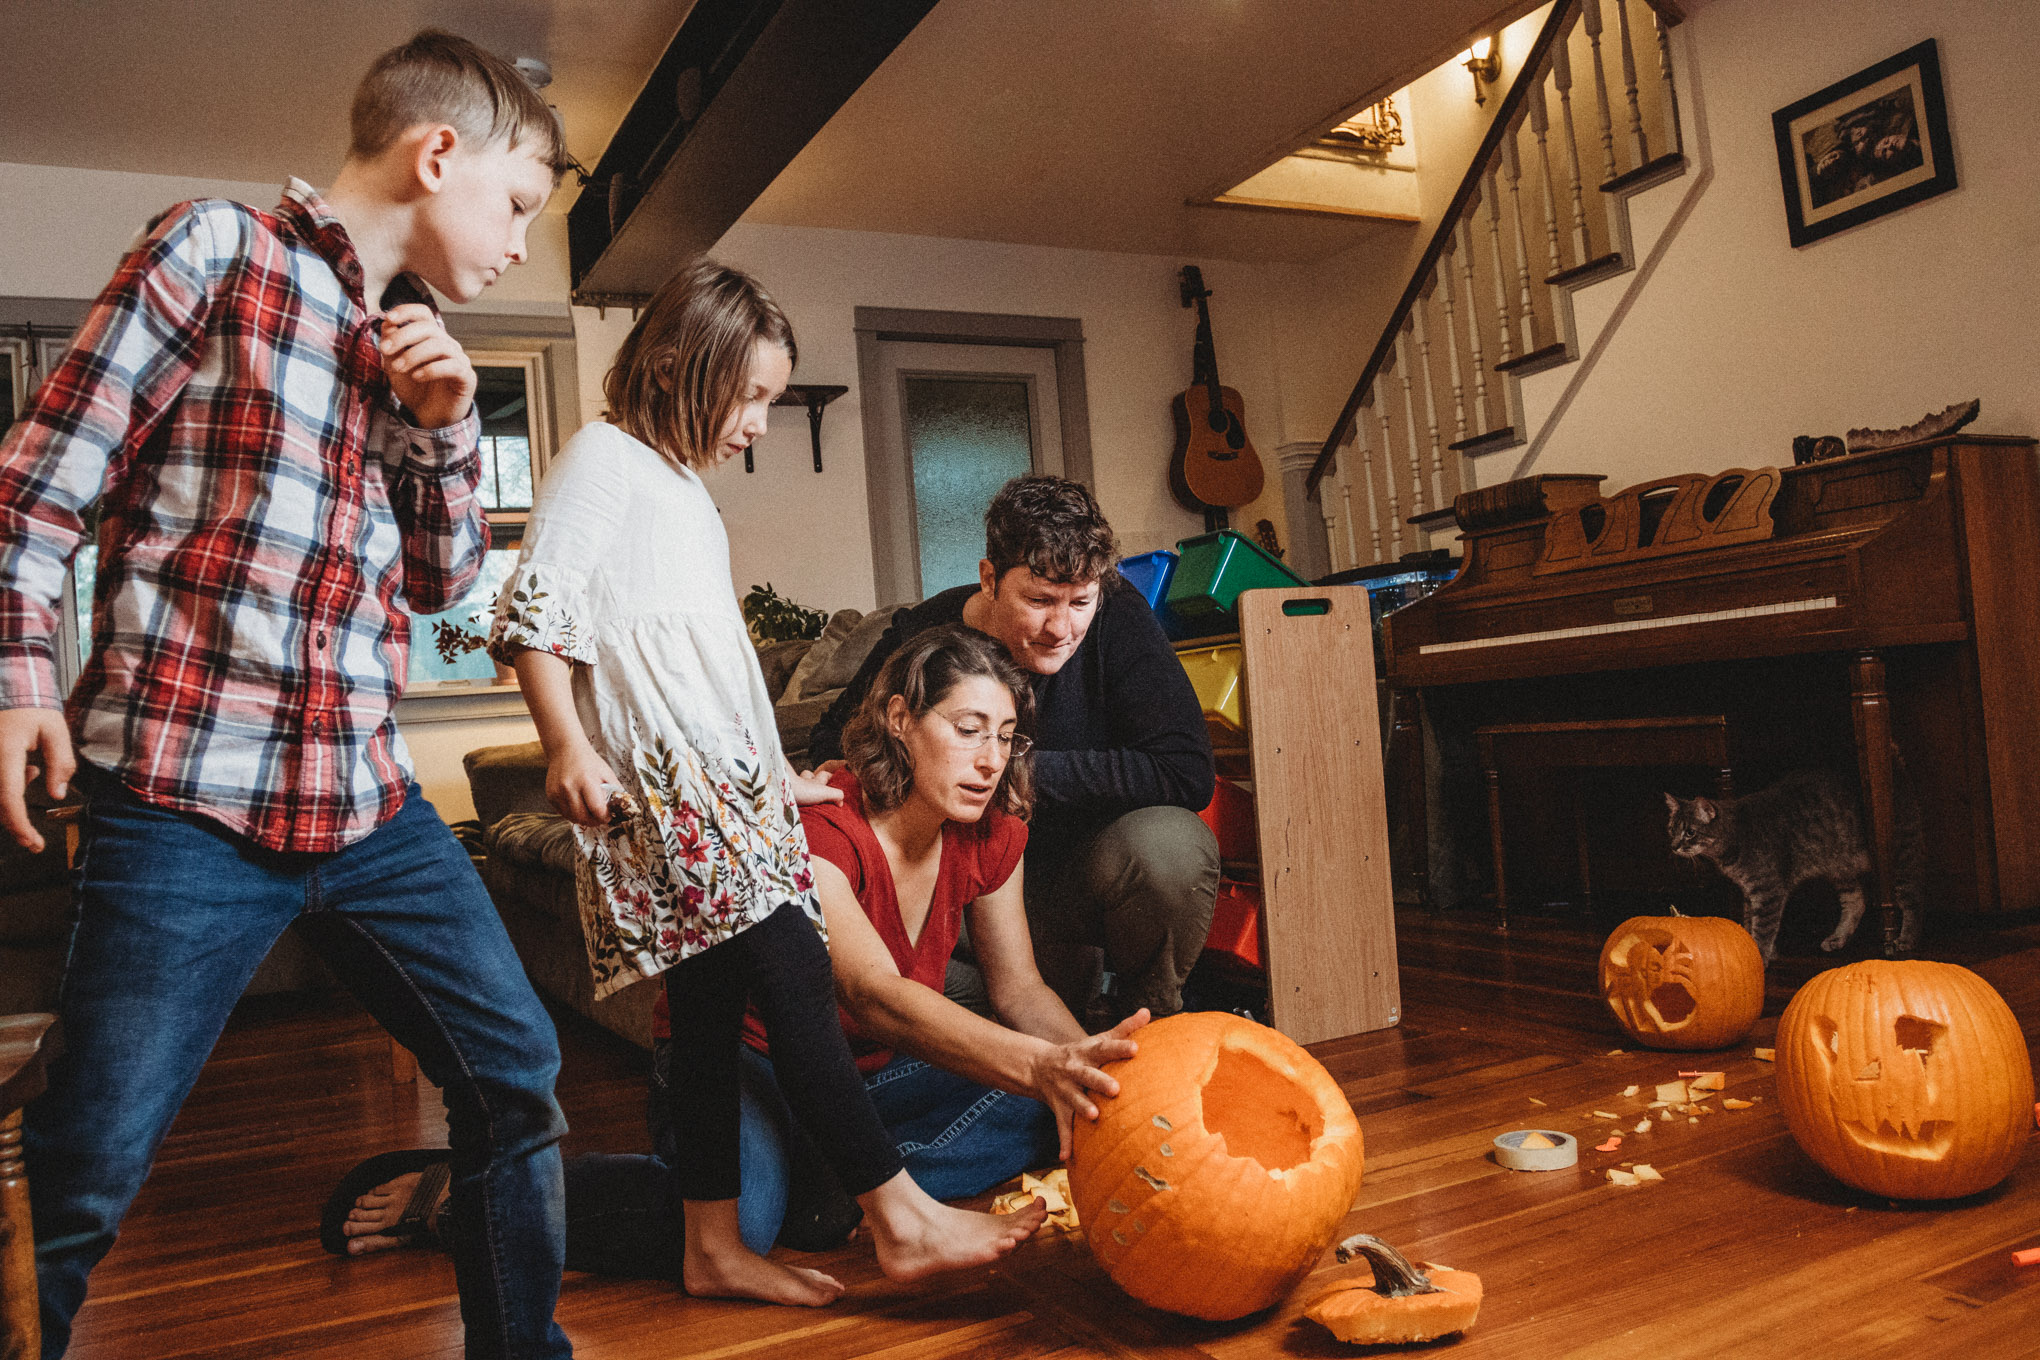 The family gathers around as Dani caves a pumpkin.